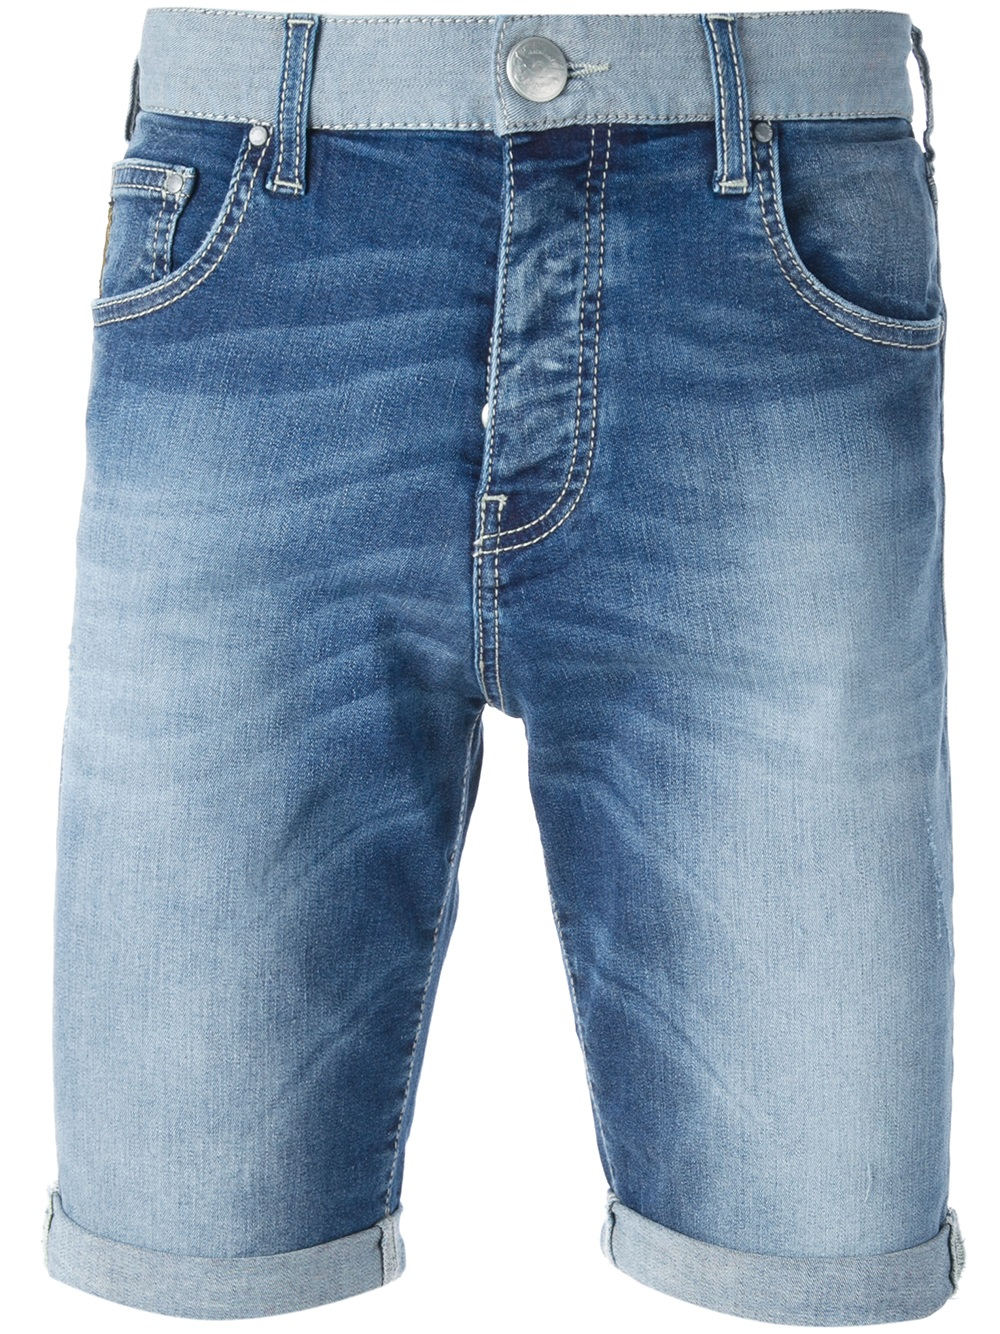 Lyst - Armani Jeans Distressed Denim Shorts in Blue for Men